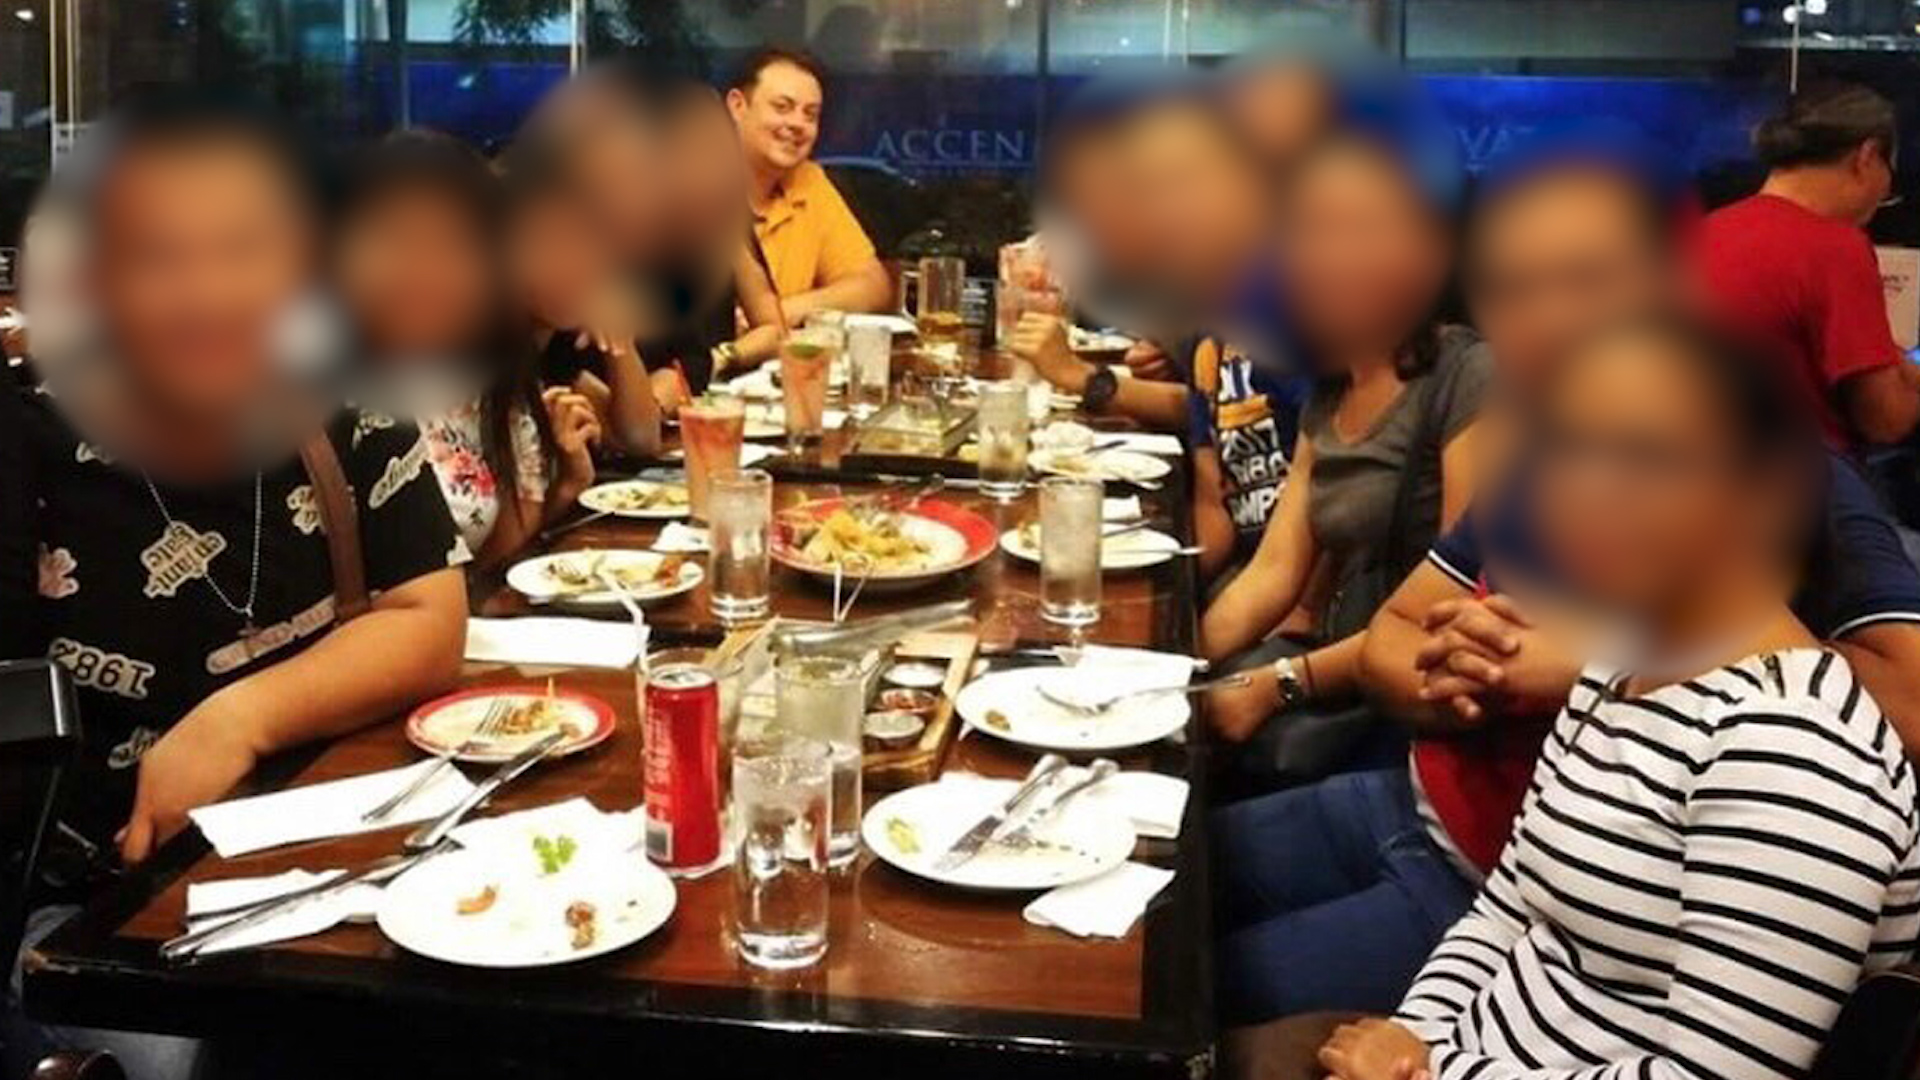 Michael James (back, left) having dinner, believed to be in the Philippines.